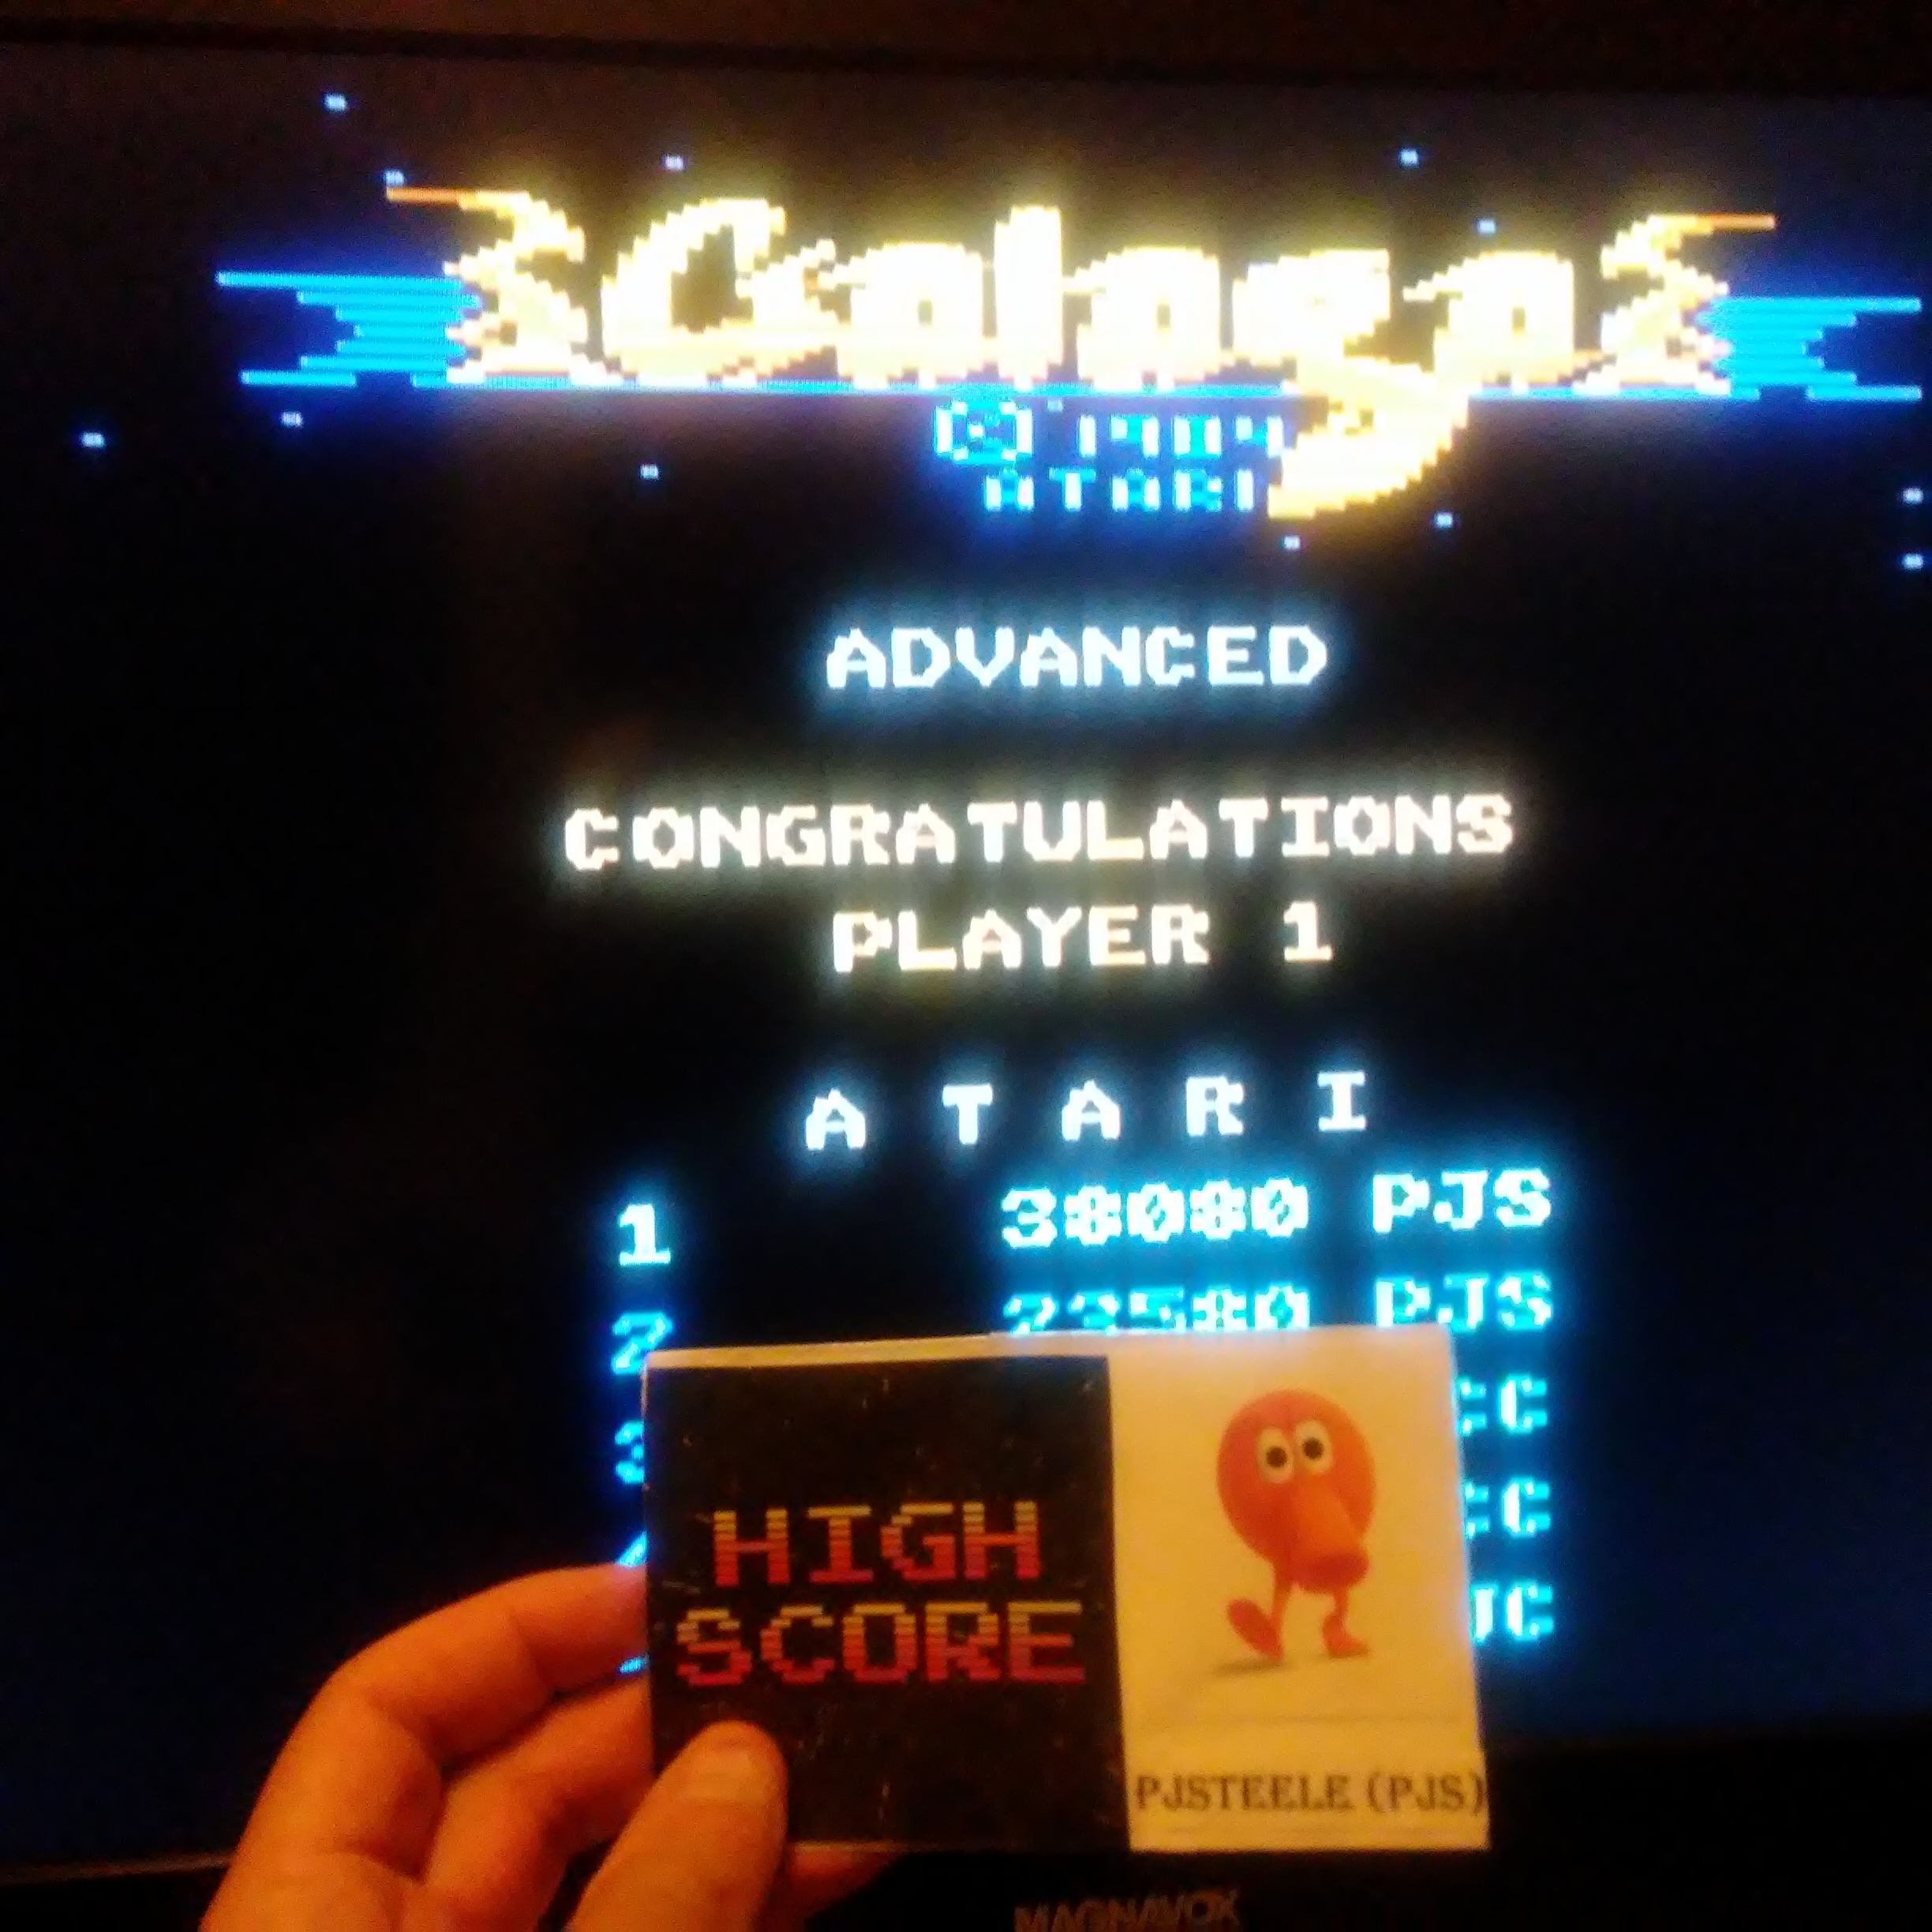 Pjsteele: Galaga: Advanced (Atari 7800 Emulated) 38,080 points on 2017-10-15 19:55:59